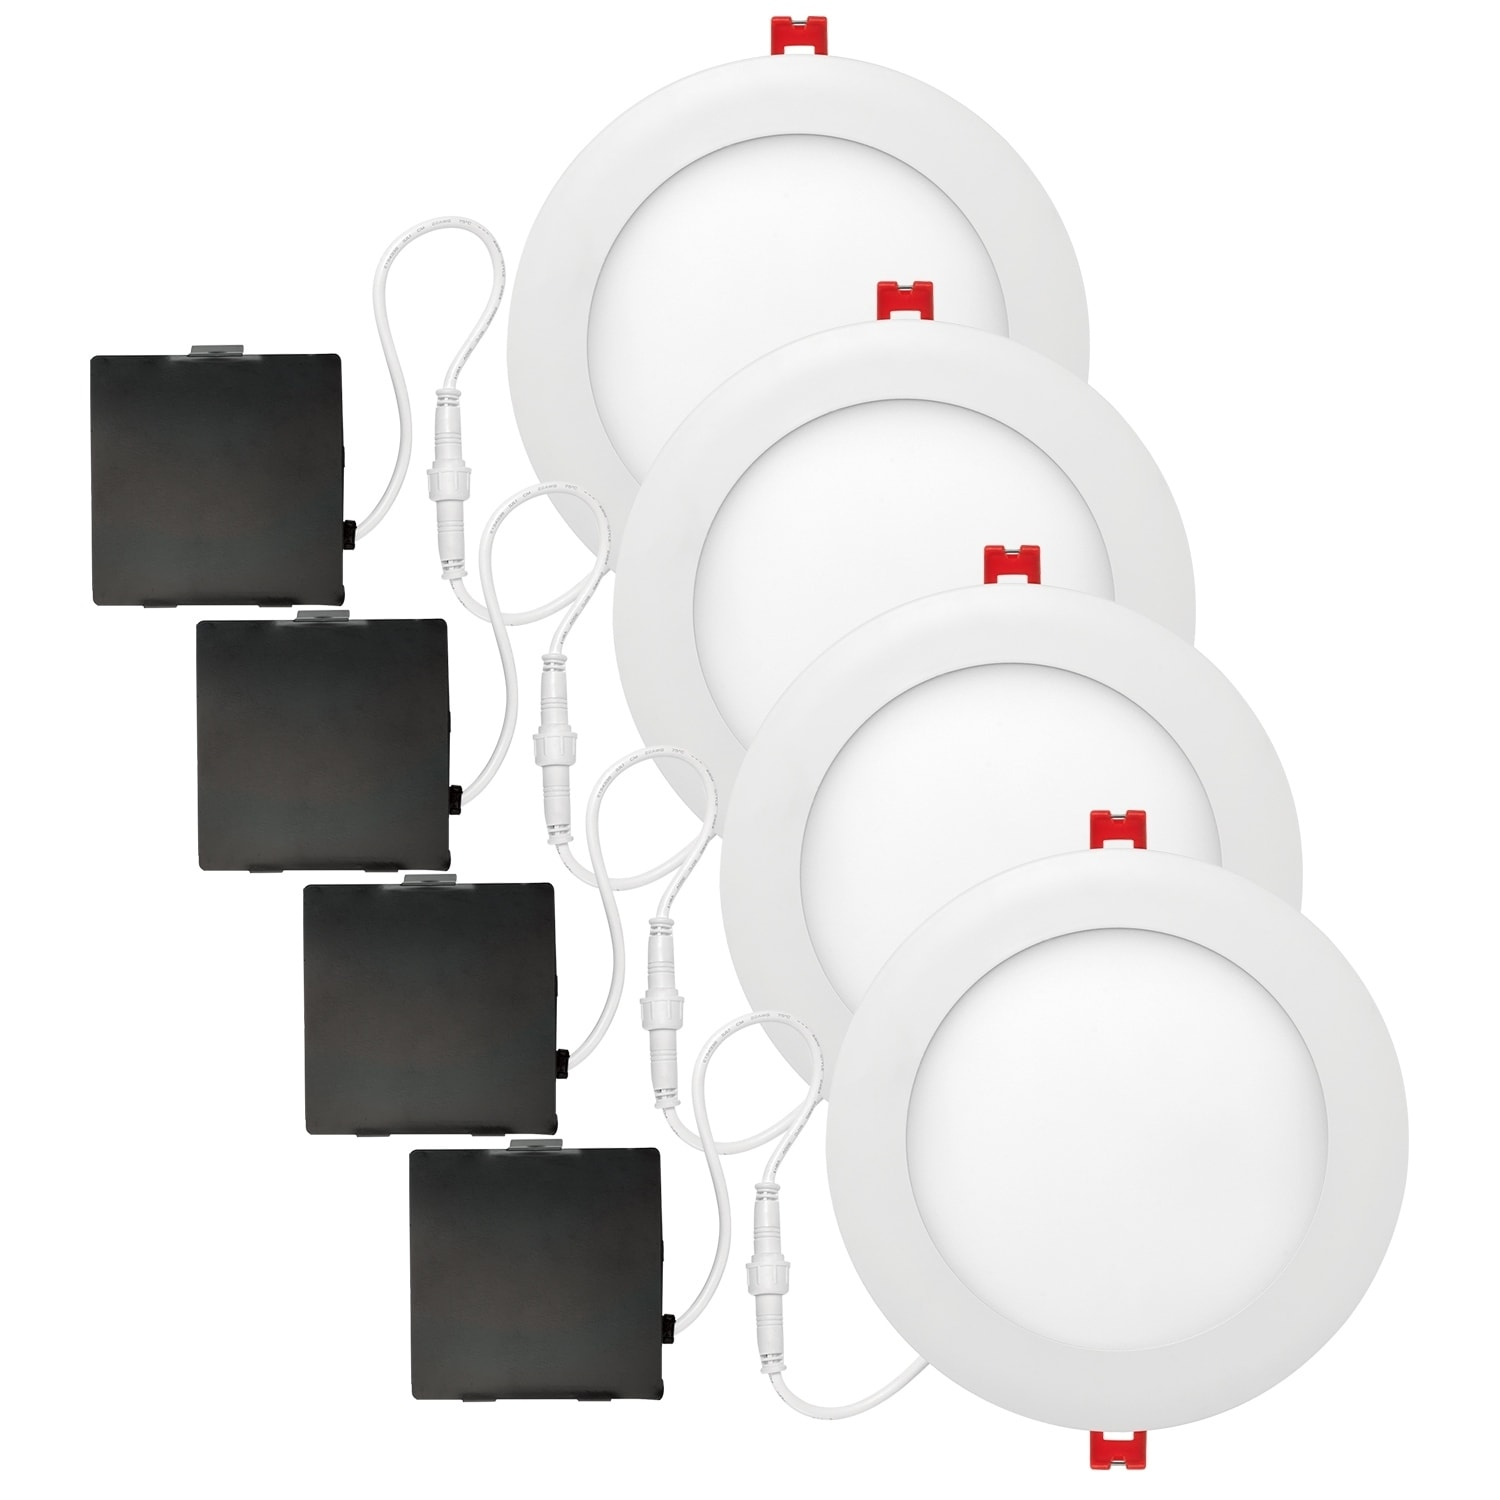 6 In Ultra Slim Designer Series Ambient Dimming Integrated Led Recessed Lighting Kit 4 Pack Free Shipping Today 22894171